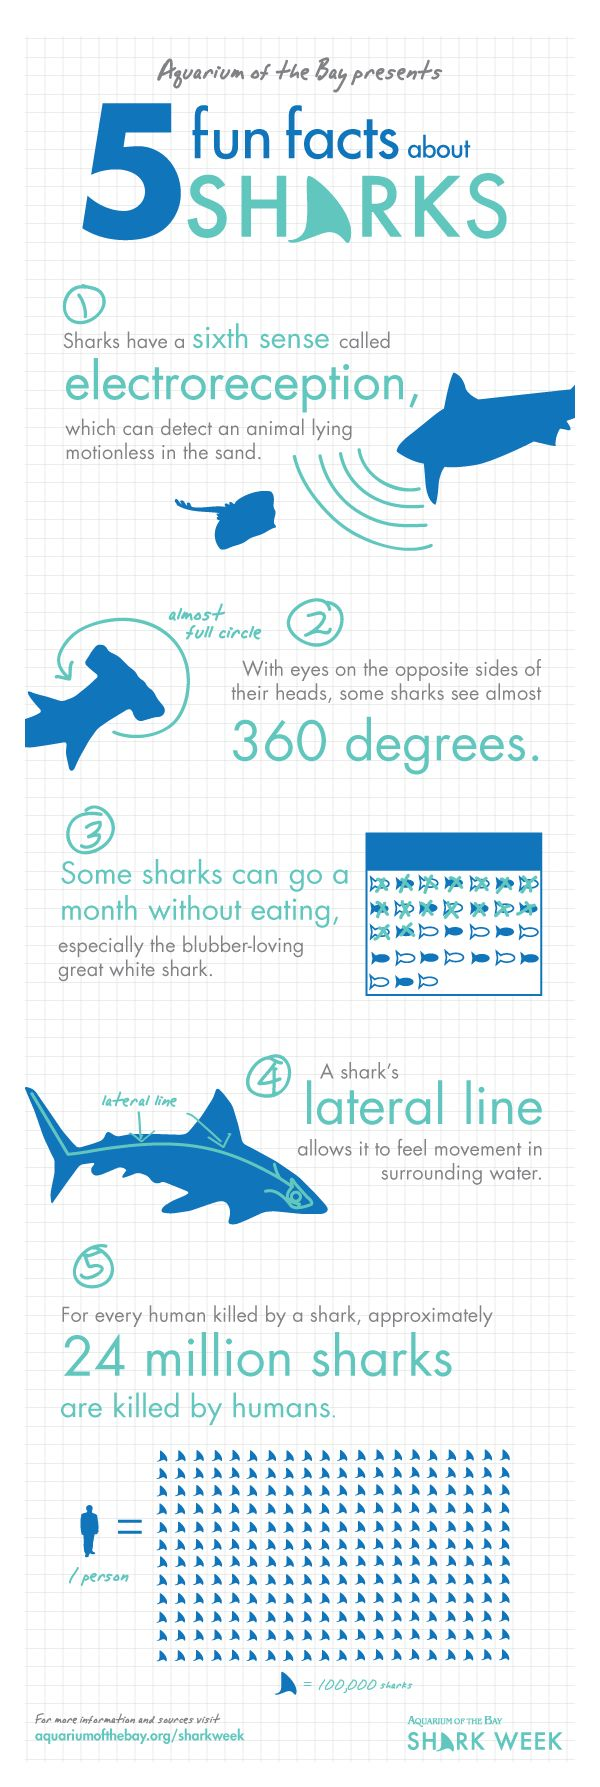 Smallest shark - Most people think of a shark as a big violent predator with very sharp teeth ranging the sea in search of food. But in fact, there are over 400 different species of sharks.  Did you know that sharks are some of the most amazing and most misunderstood creatures on the planet? So, for you to understand them more, here is the list of smallest sharks ever lived in the world